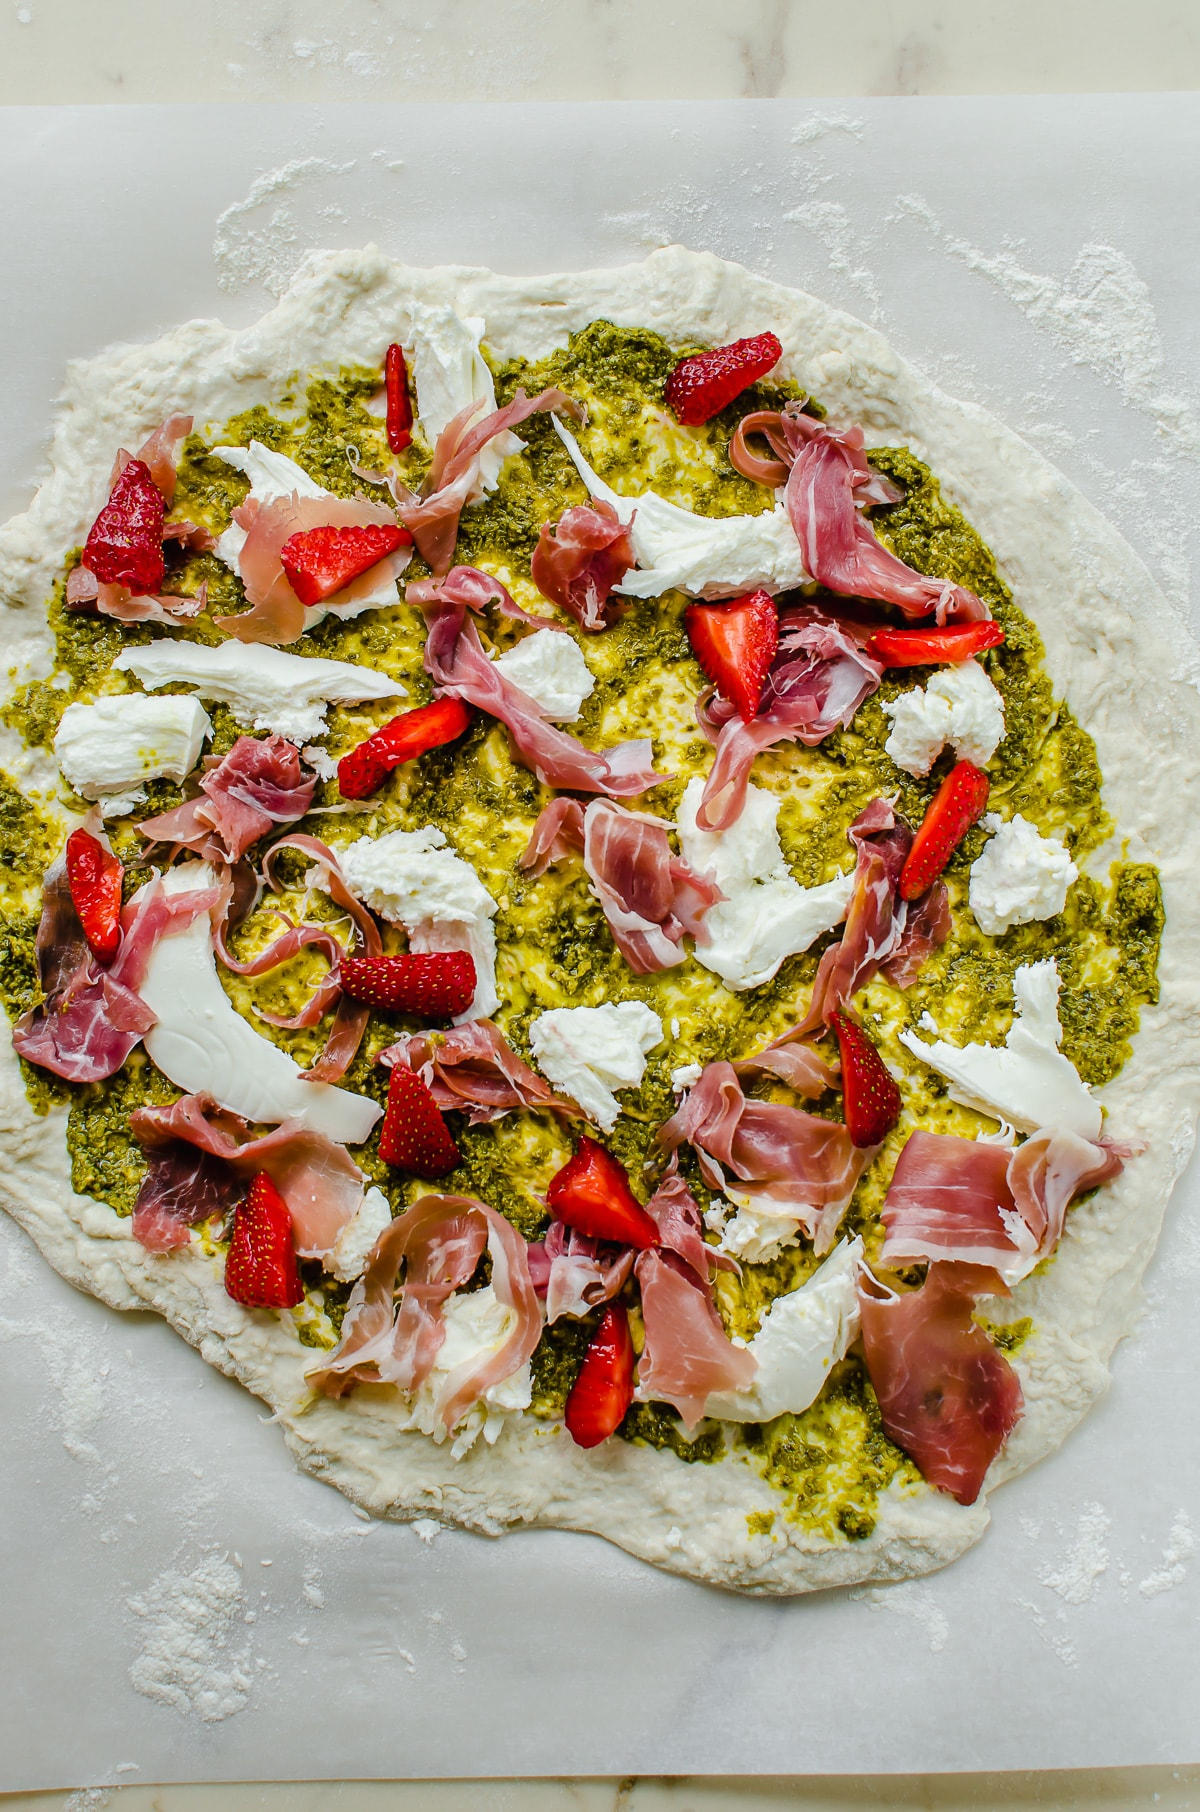 Pizza dough topped with pesto, fresh mozzarella, prosciutto and strawberries.